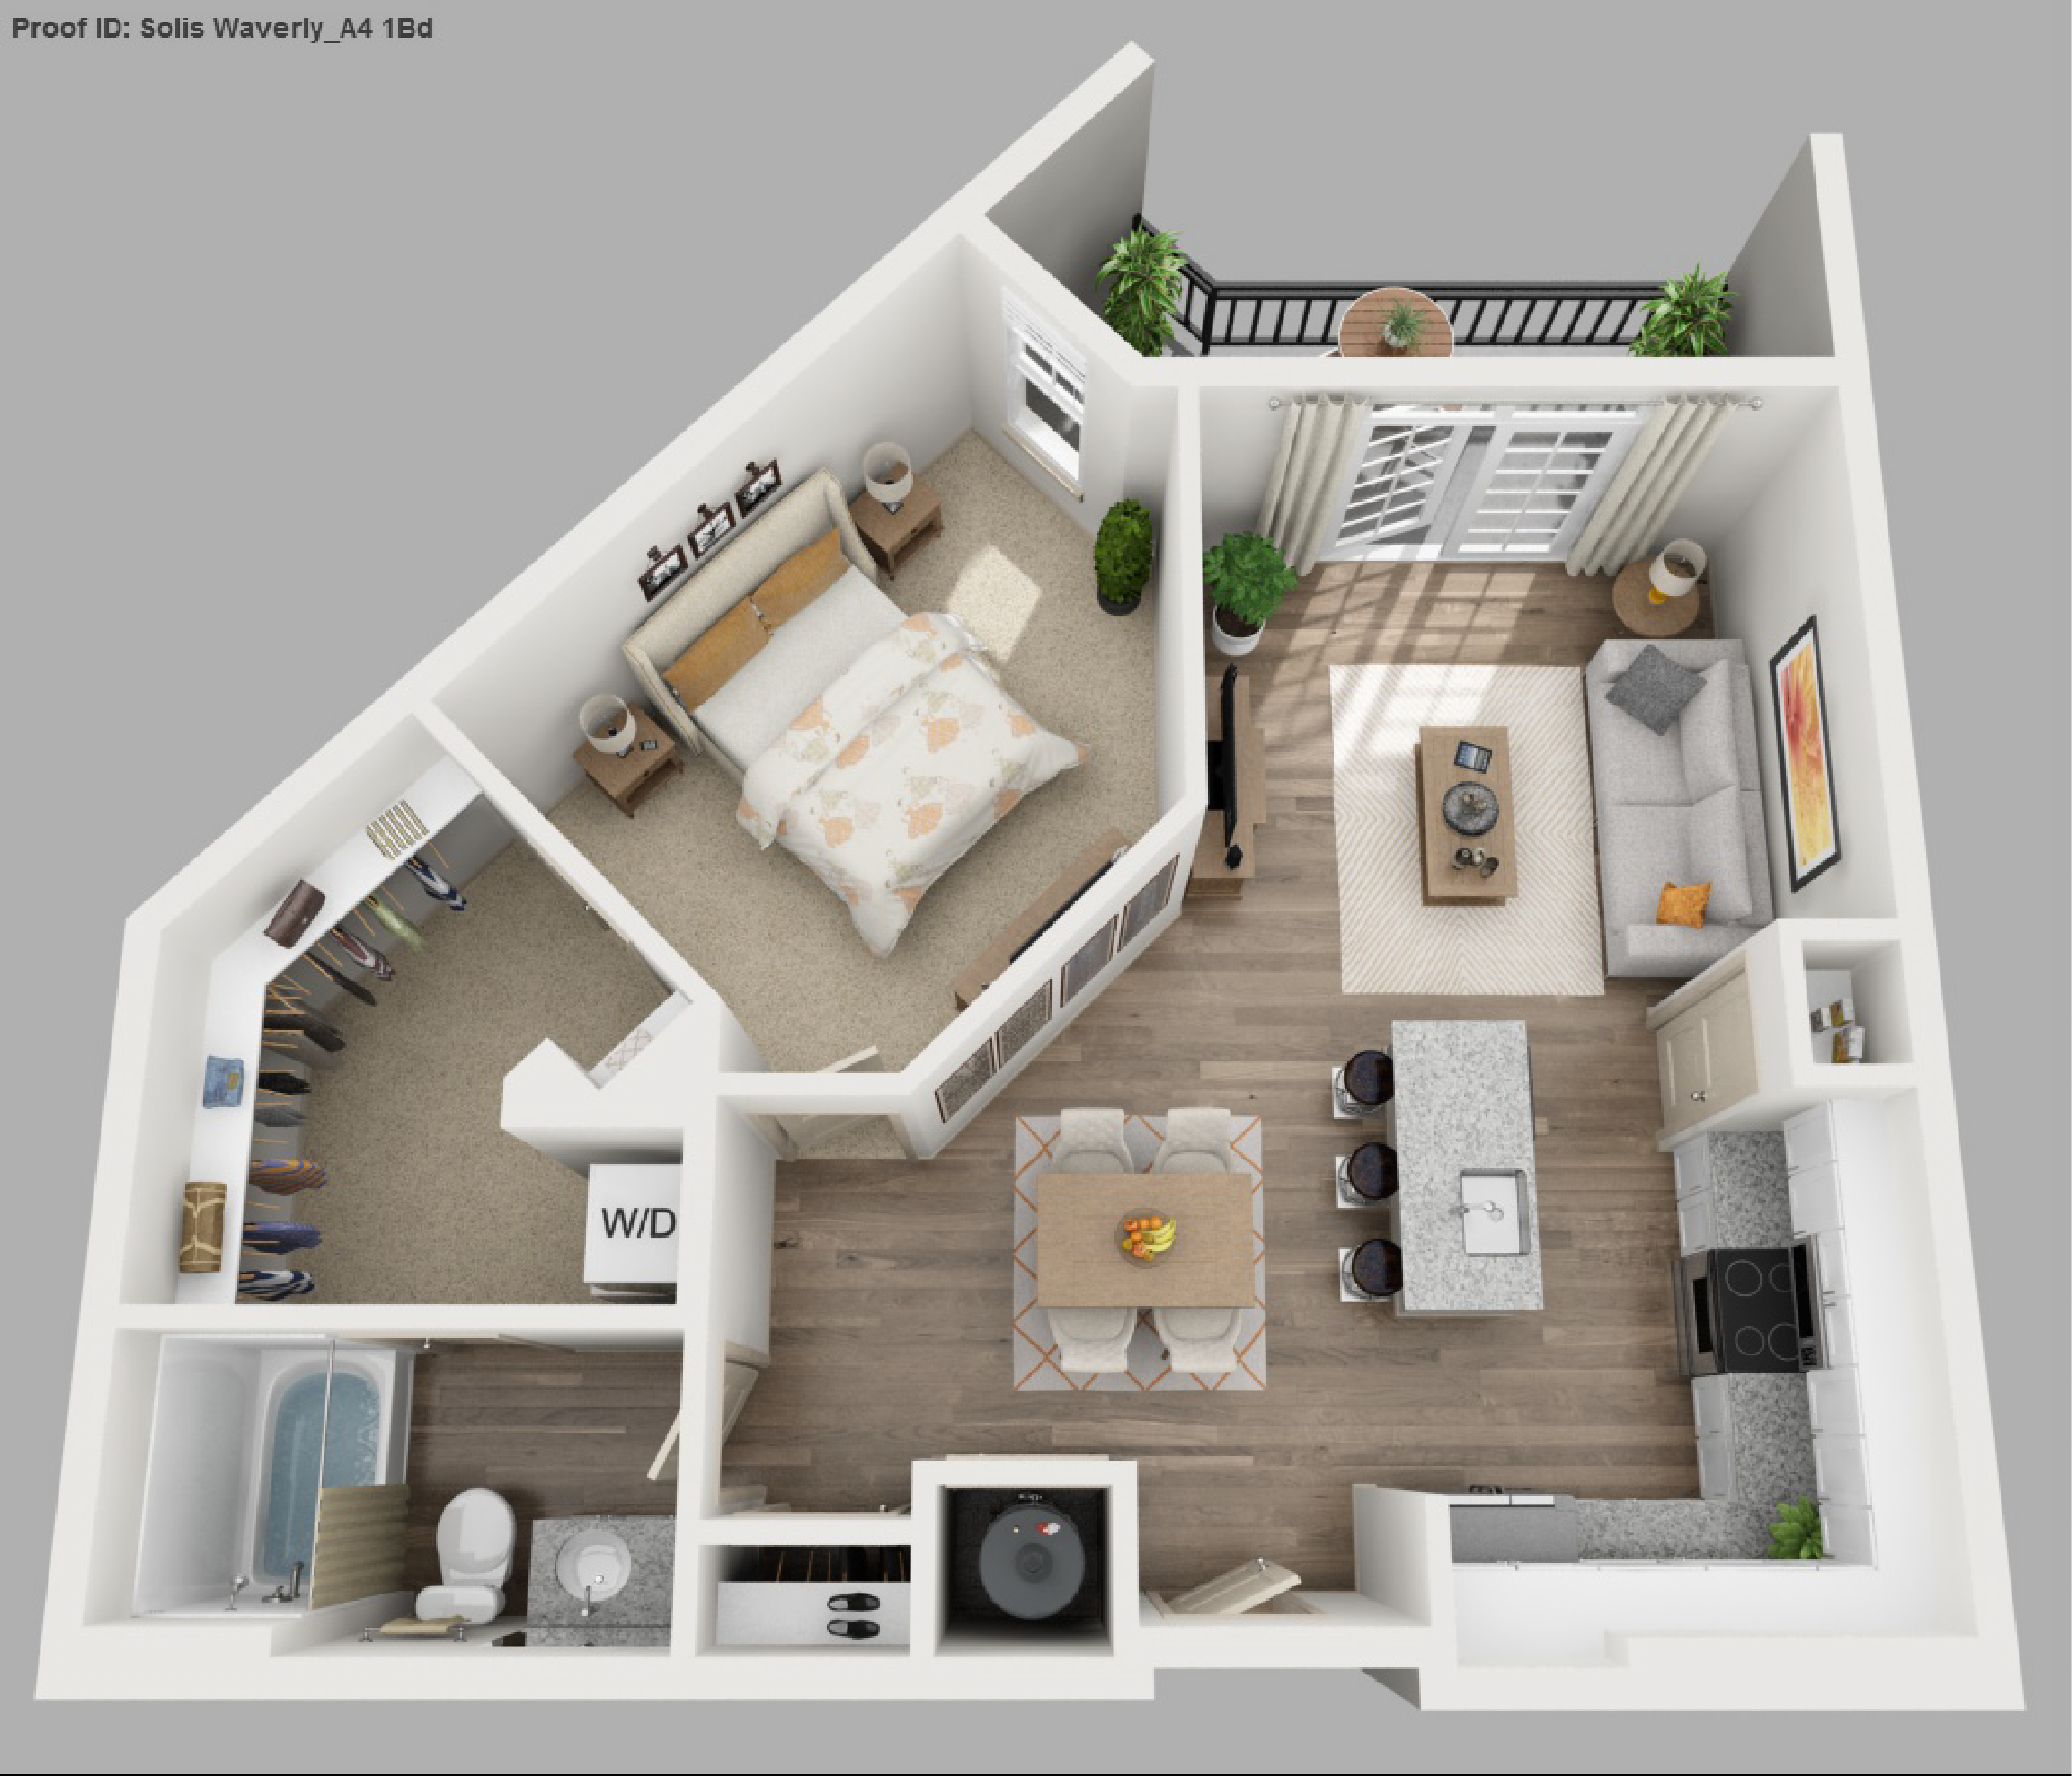 Solis apartments floorplans waverly for One bedroom apartment design plans